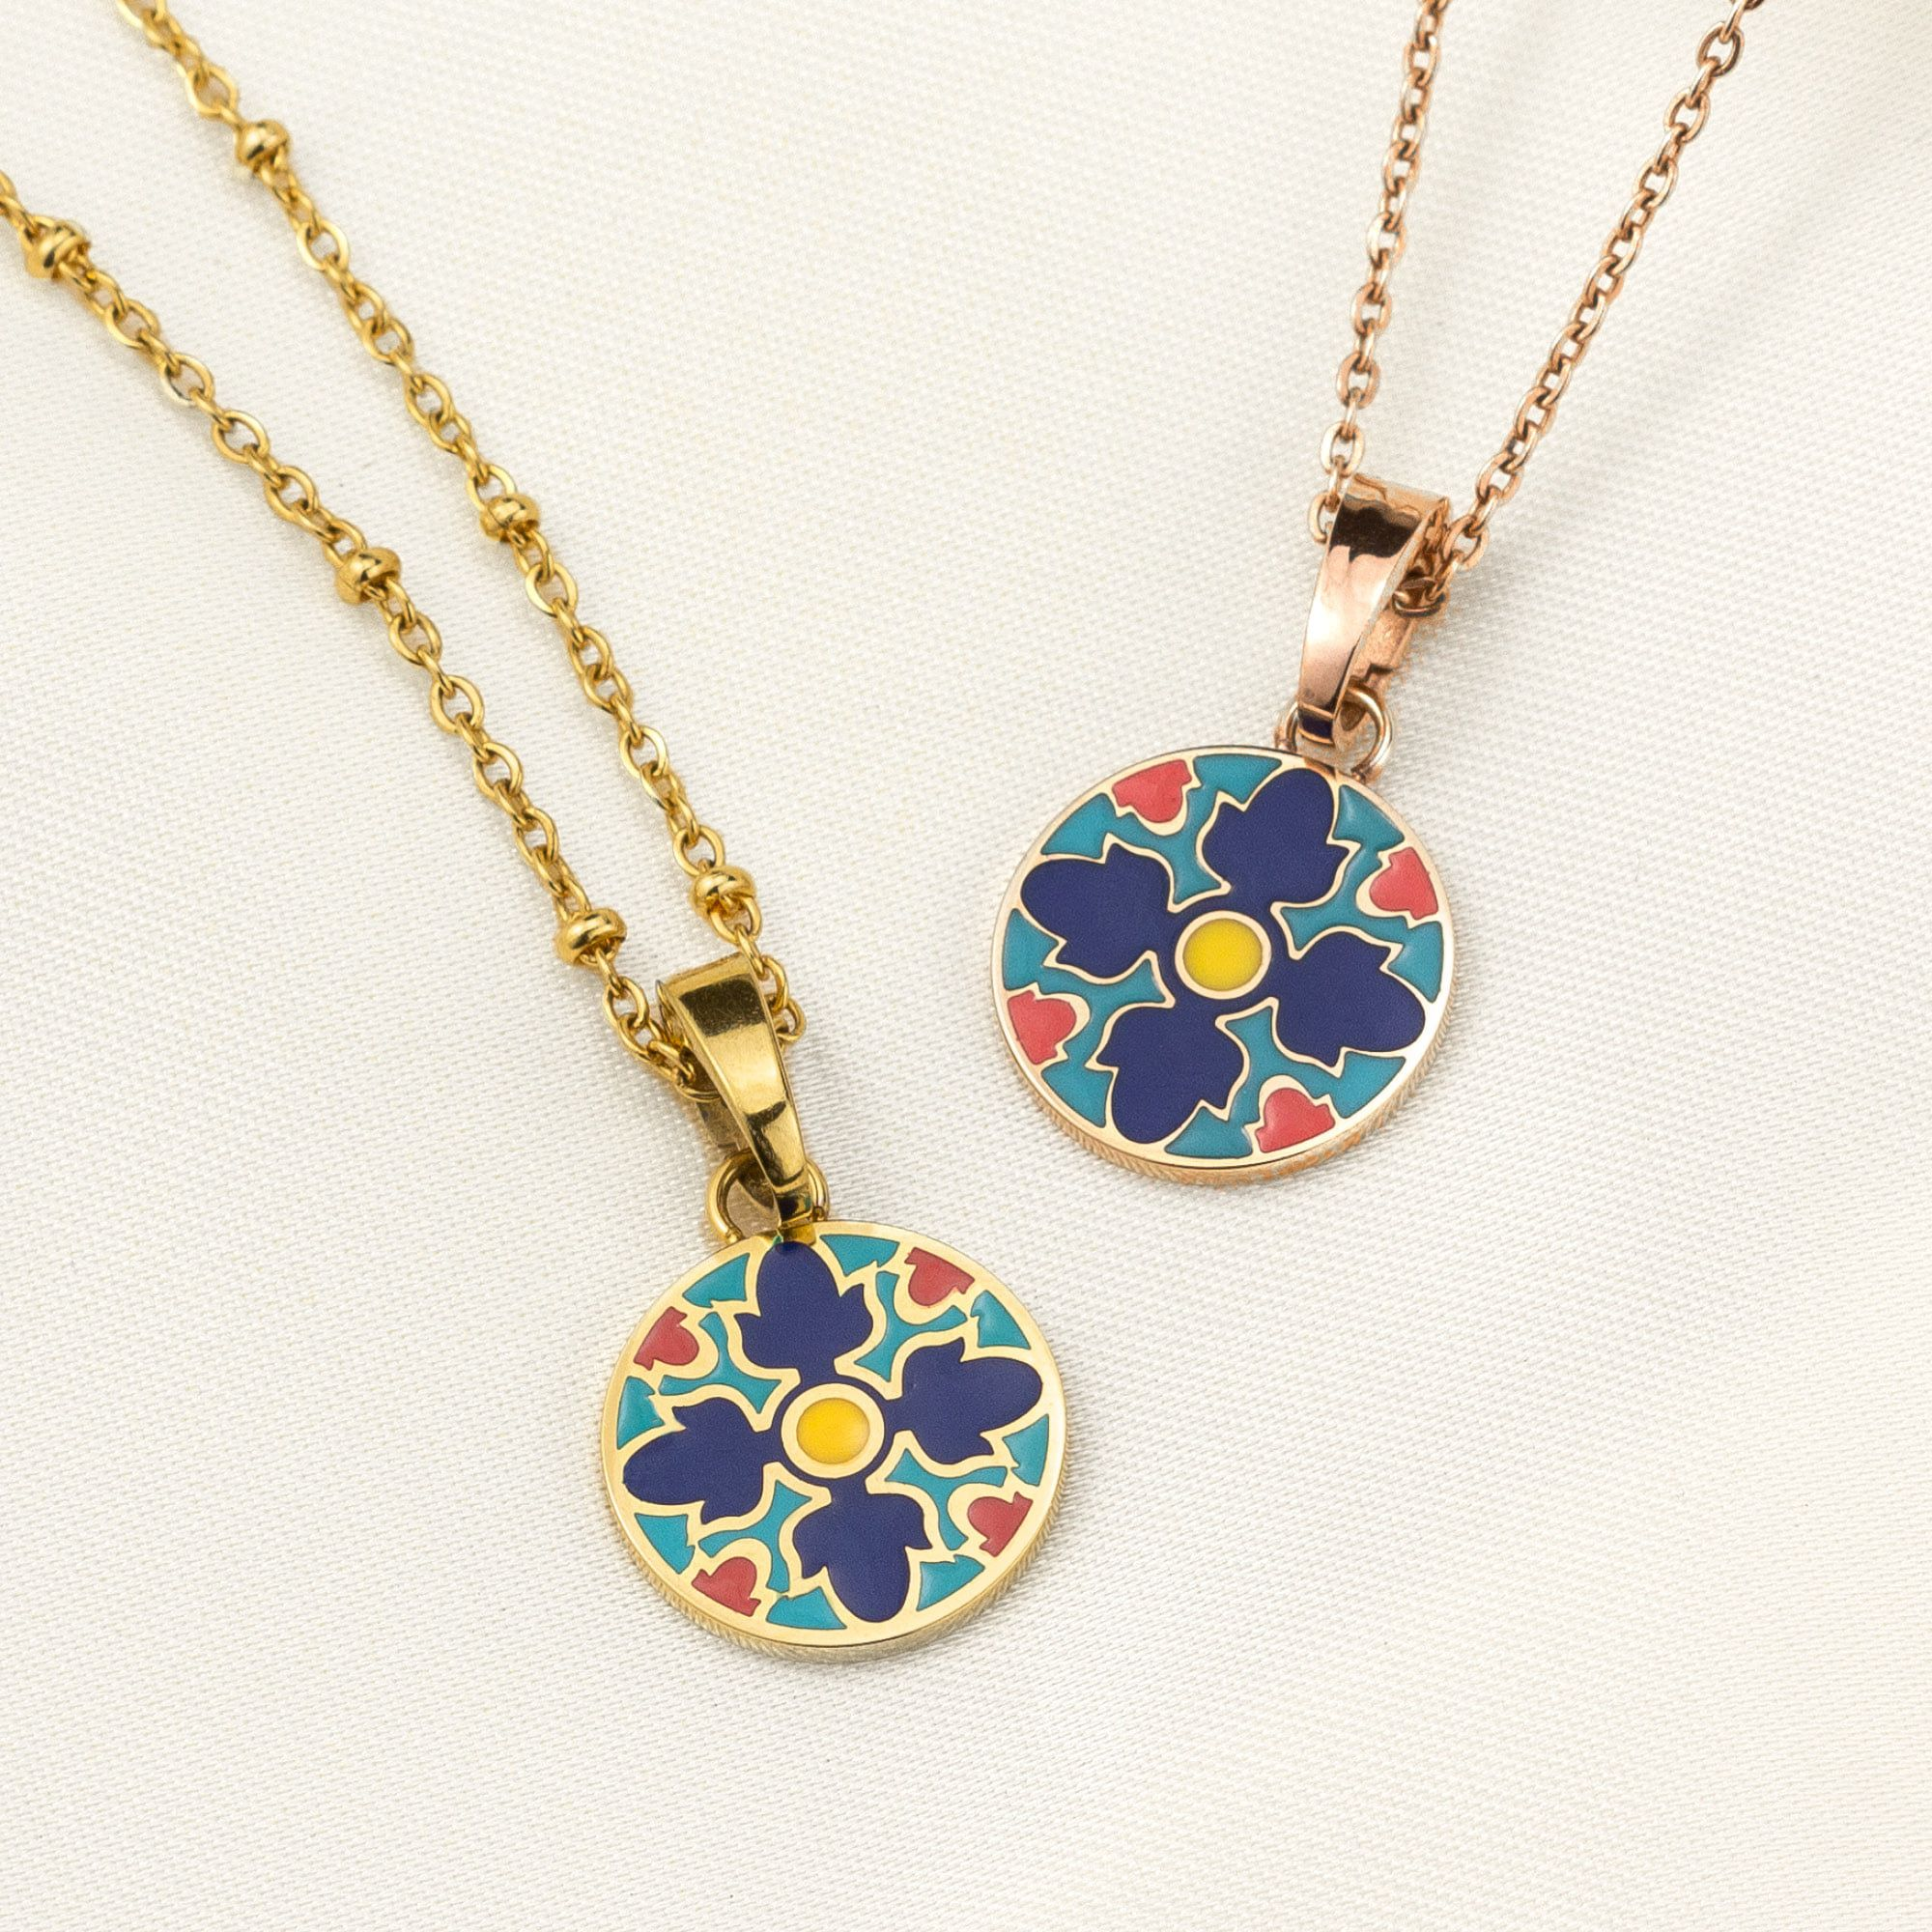 Our New Friendship Pendants Are Inspired By The Alstroemeria Flower Friendship Flower Maduma Pendant Is A Symbo In 2020 Jewelry Inspiration Heritage Jewellery Jewelry